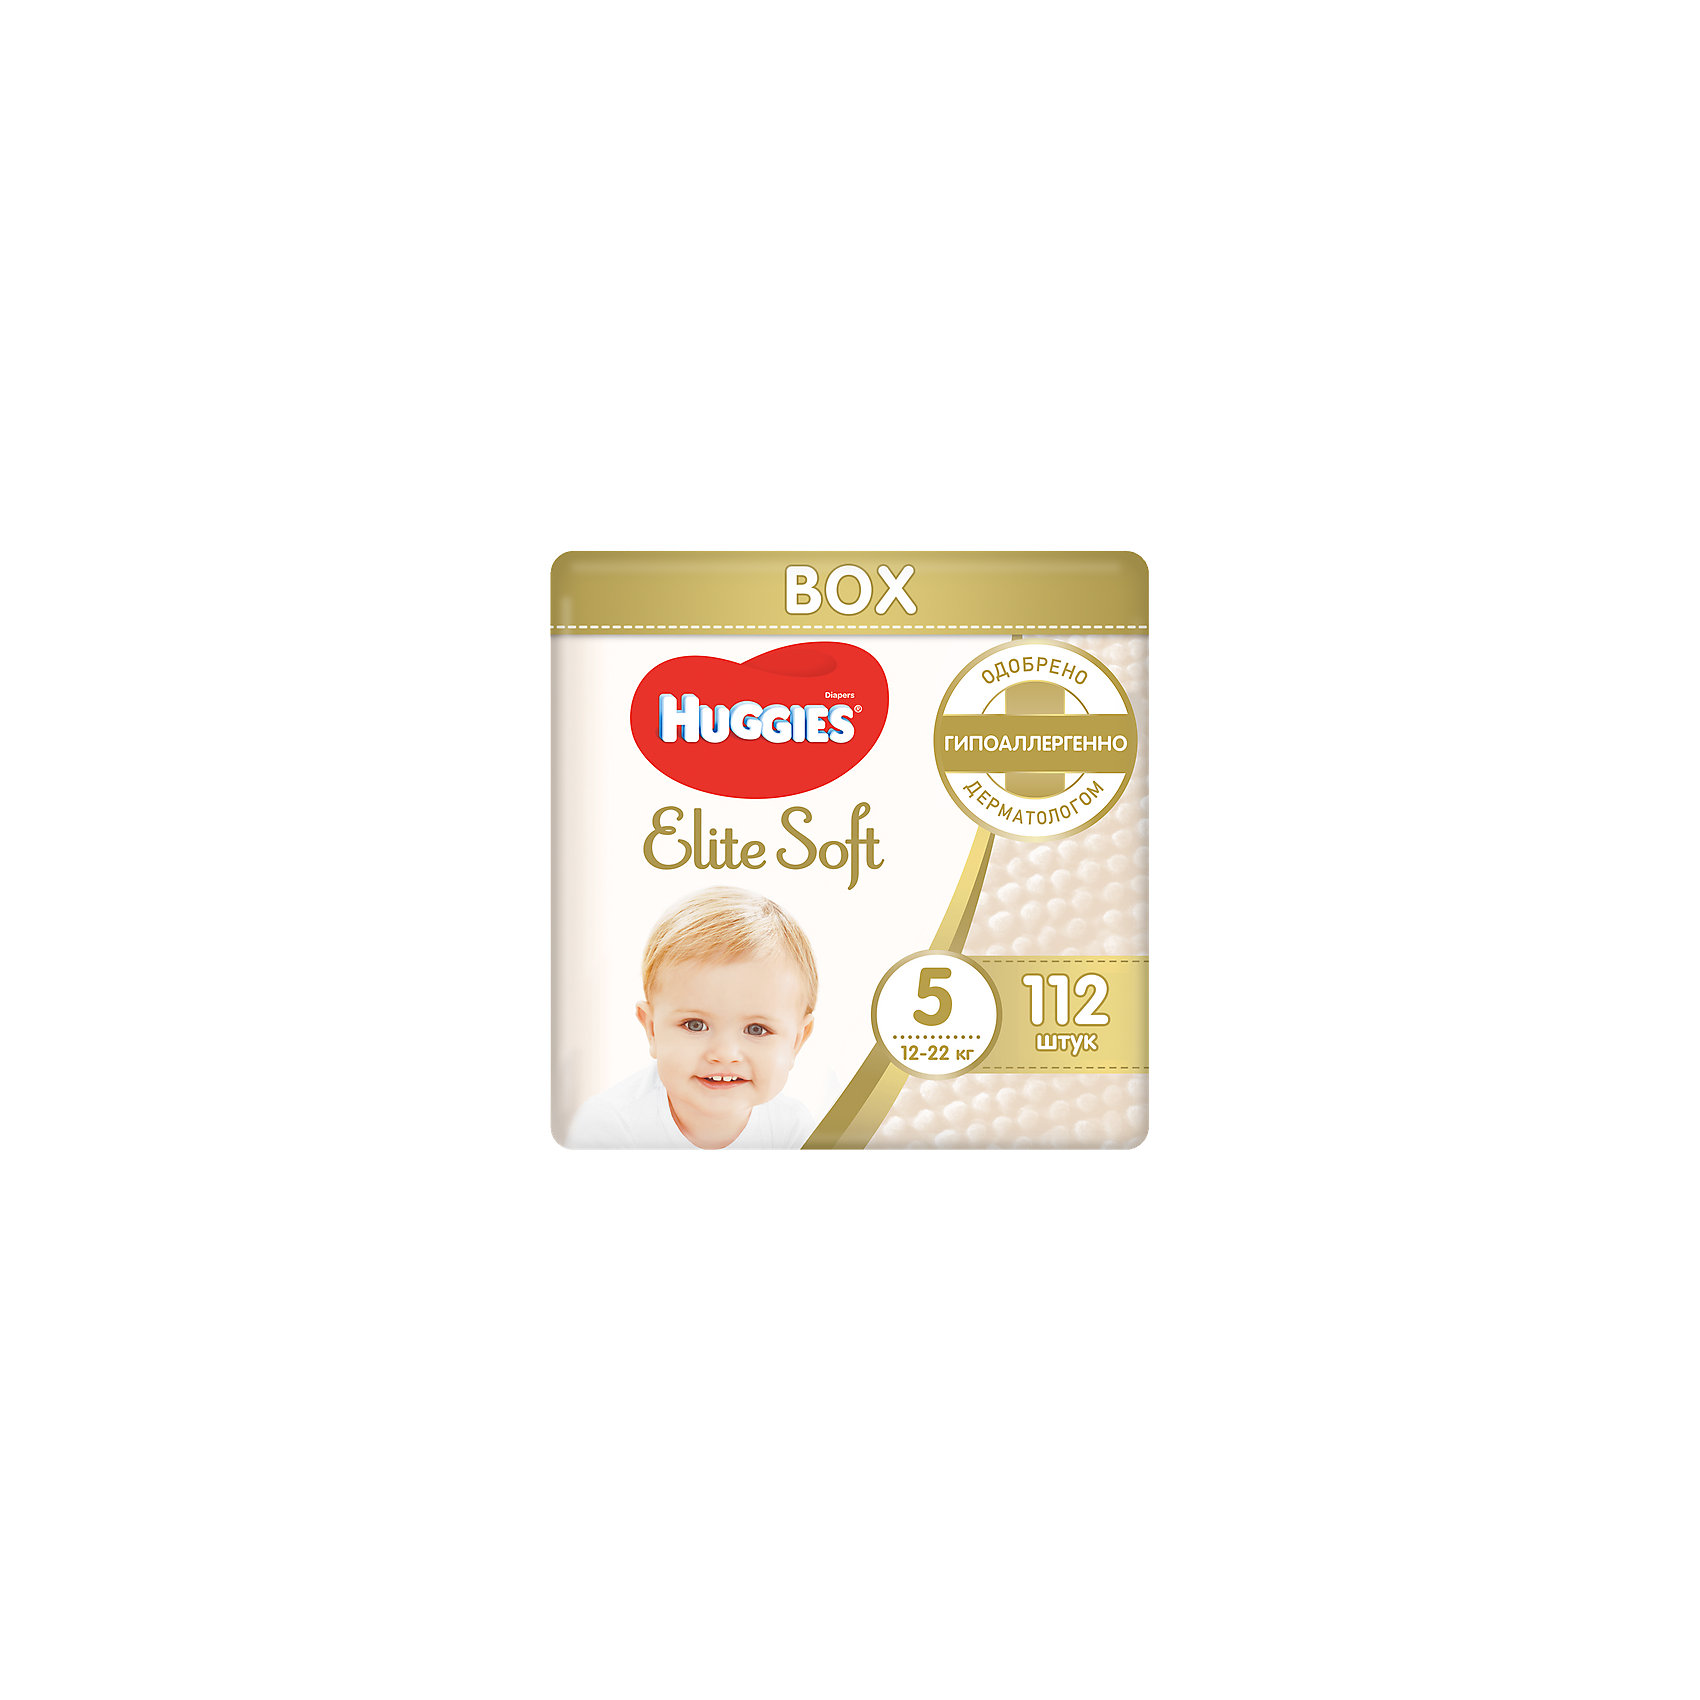 HUGGIES Подгузники Elite Soft 5, 12-22 кг, 112 шт., Huggies greenty подгузники greenty 5 13 кг 32 шт